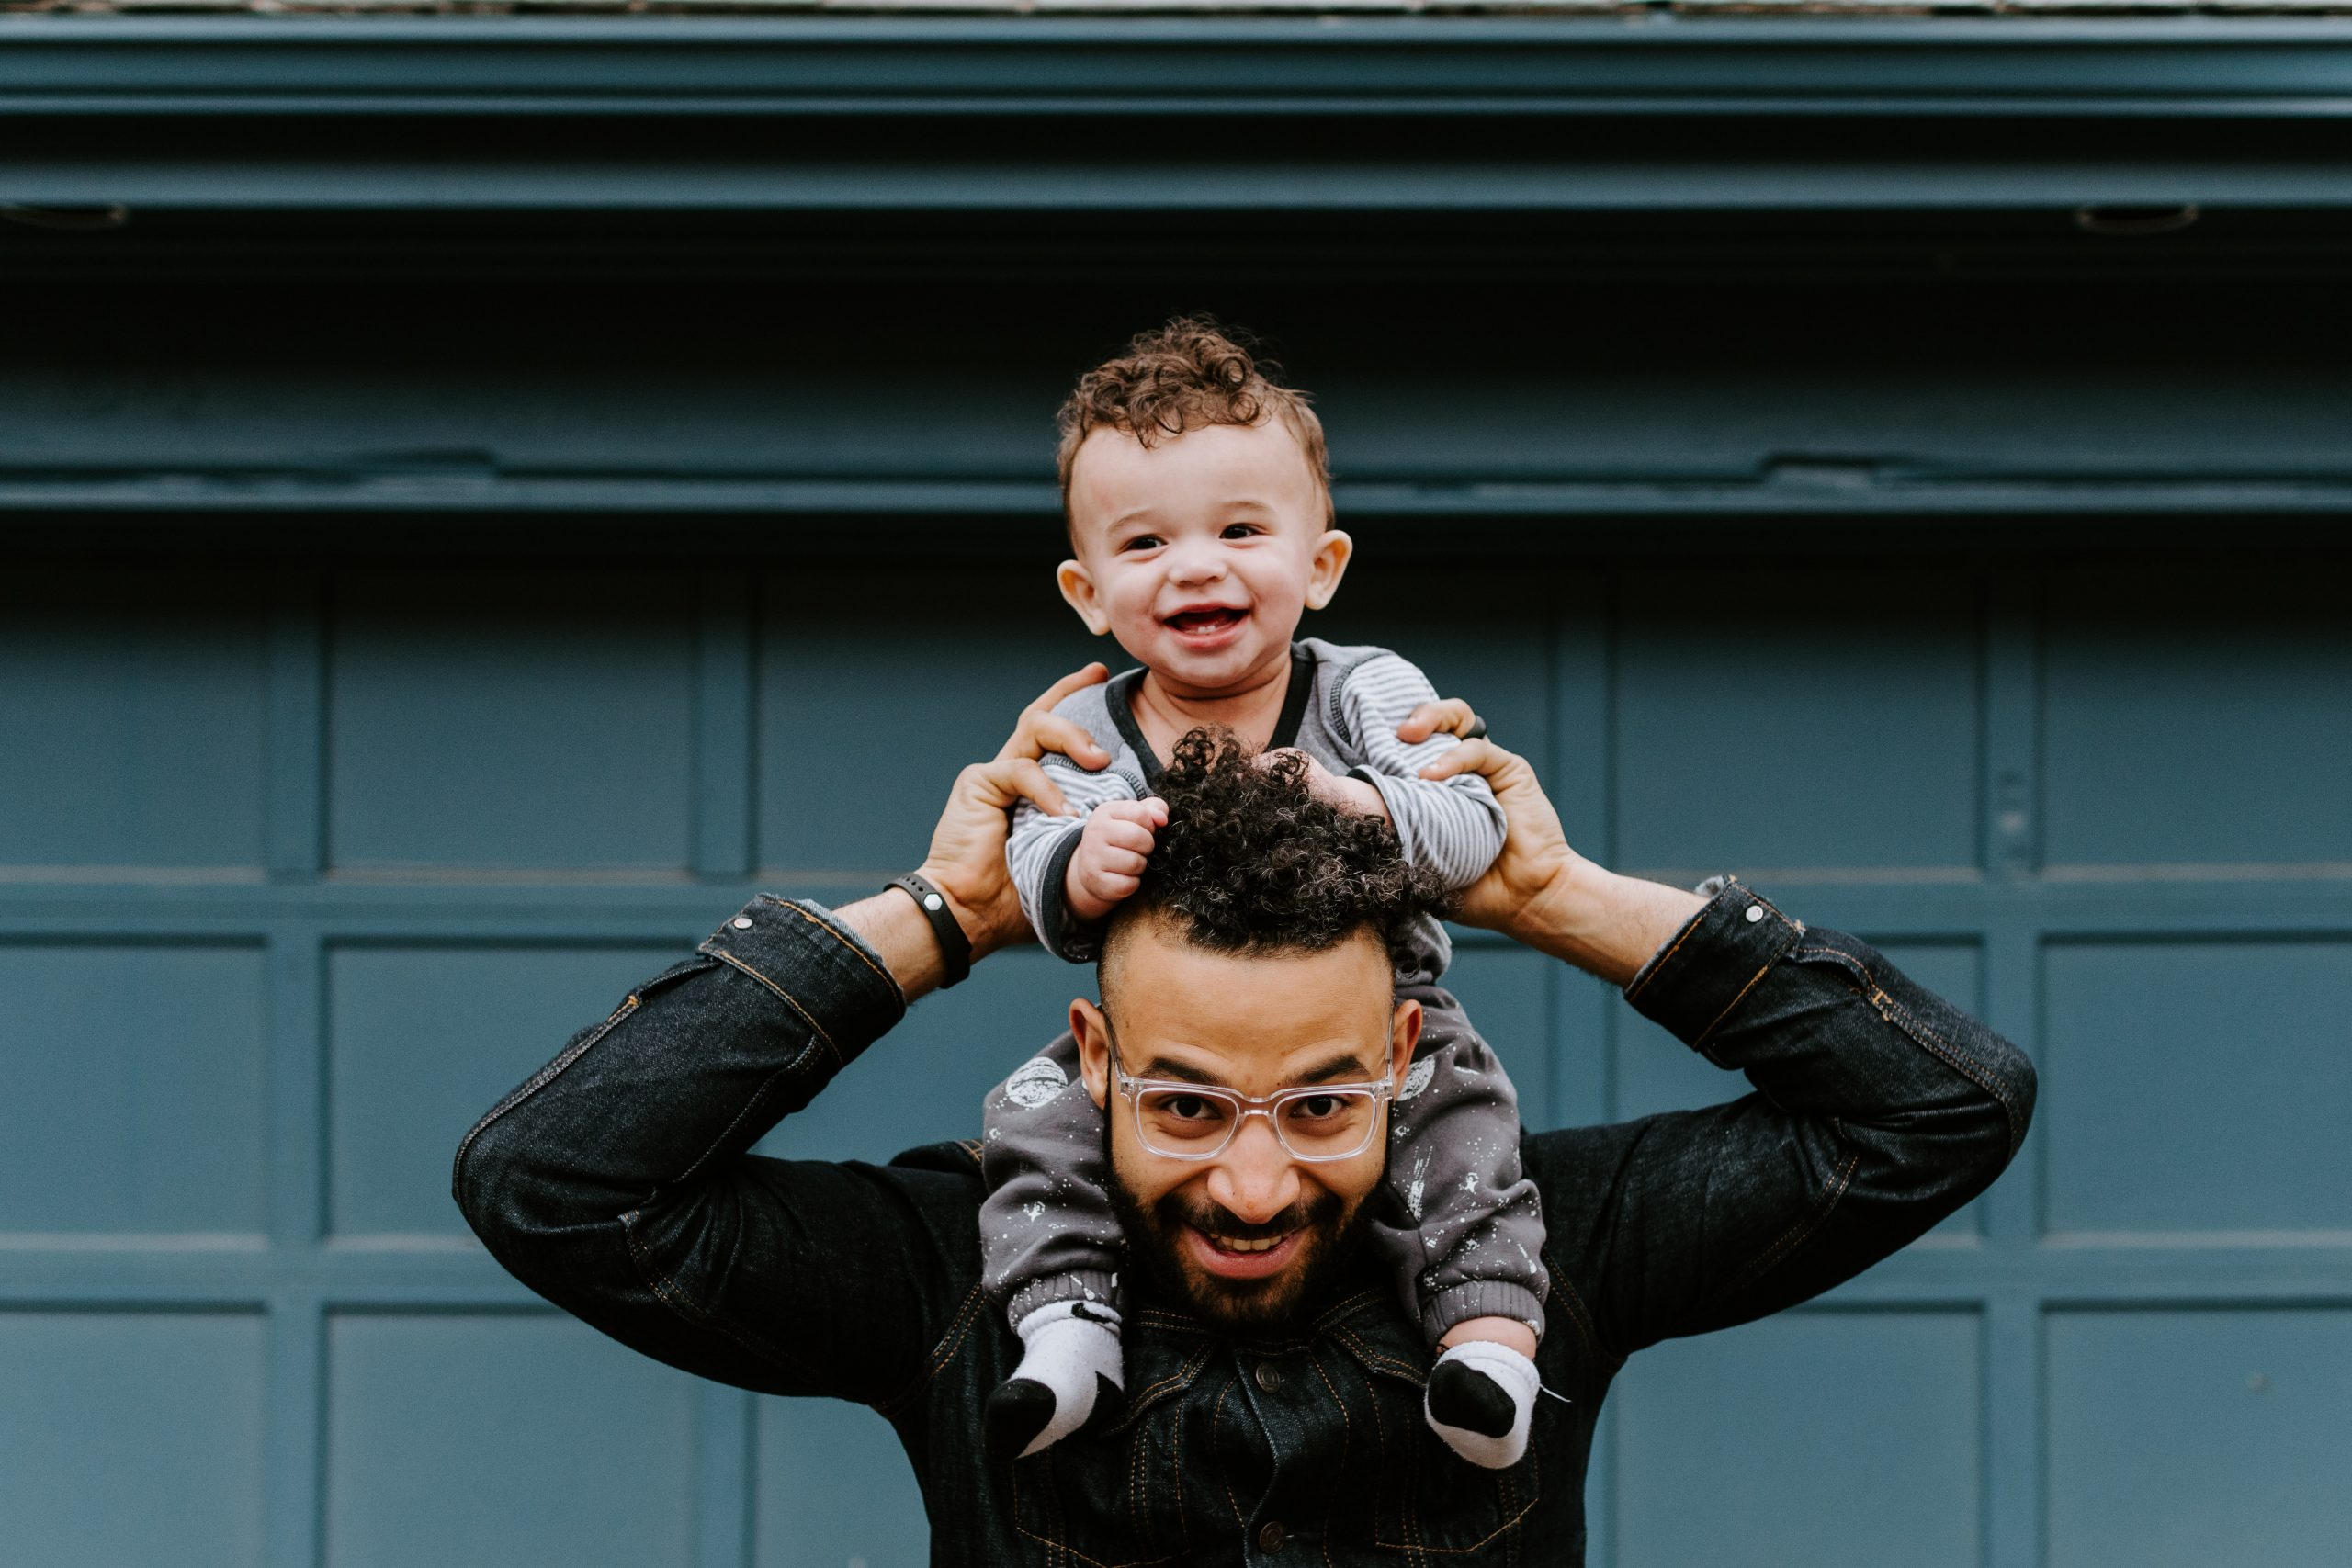 Man with child on shoulders